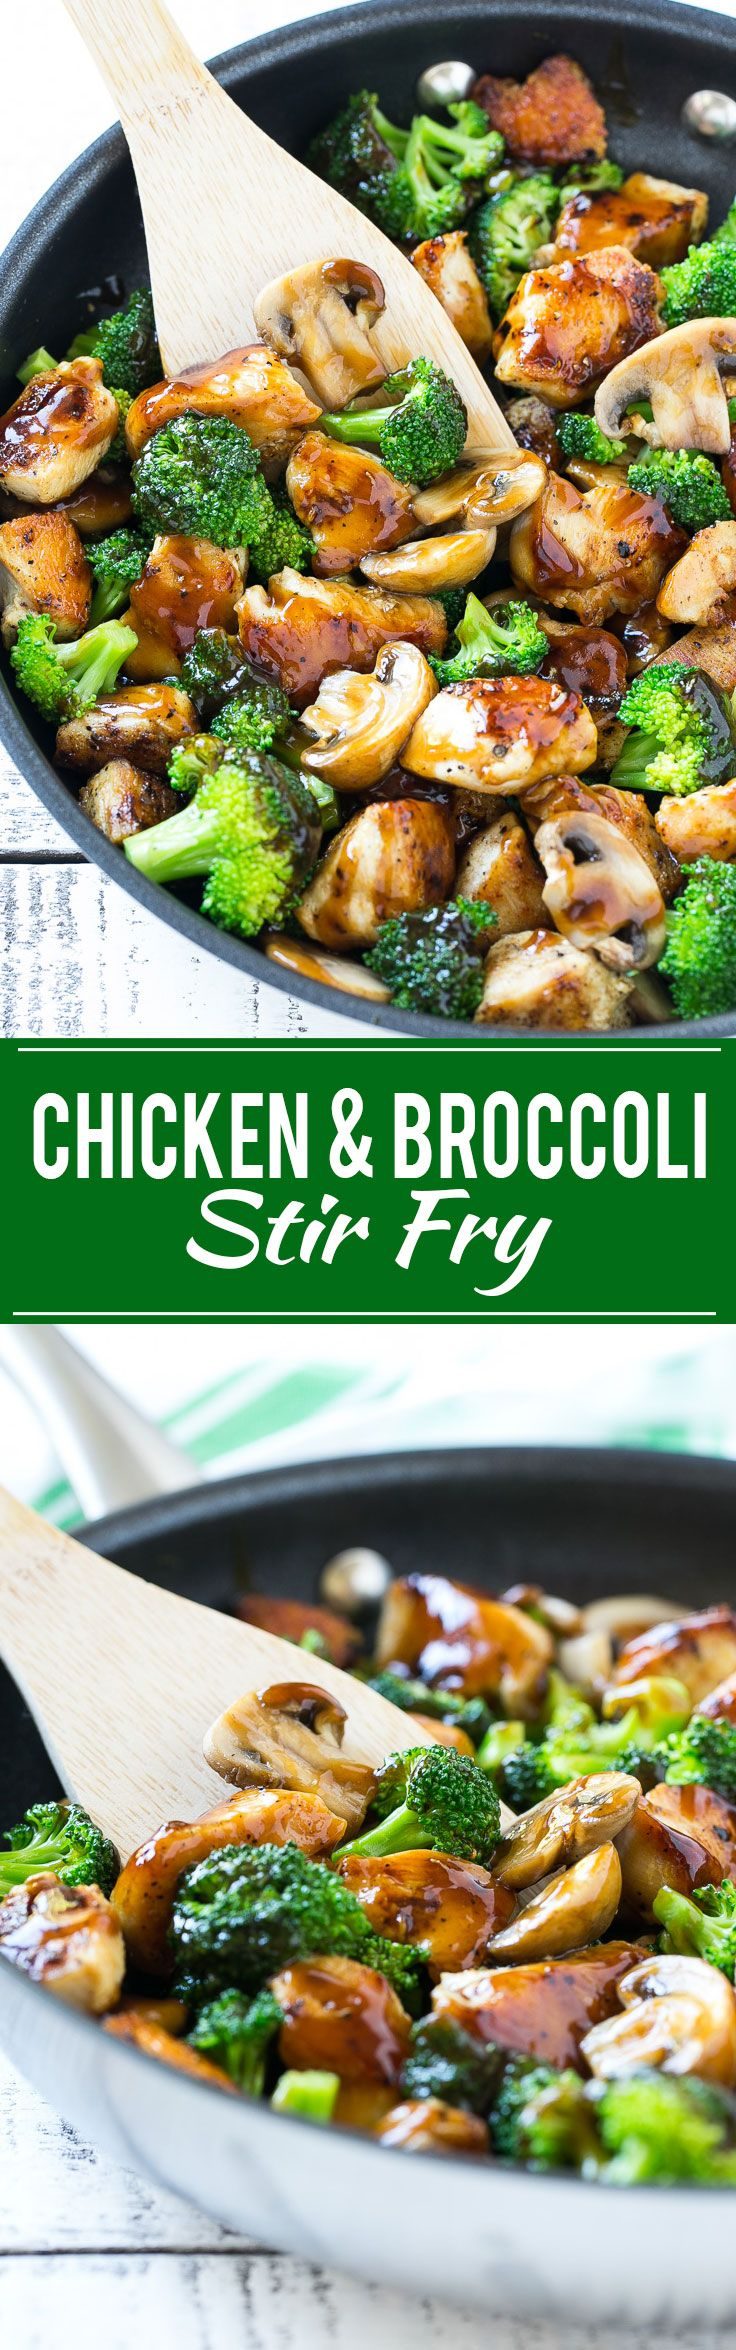 Chicken and broccoli stir fry recipe chinese food recipe chicken chicken and broccoli stir fry recipe chinese food recipe chicken and broccoli easy forumfinder Gallery